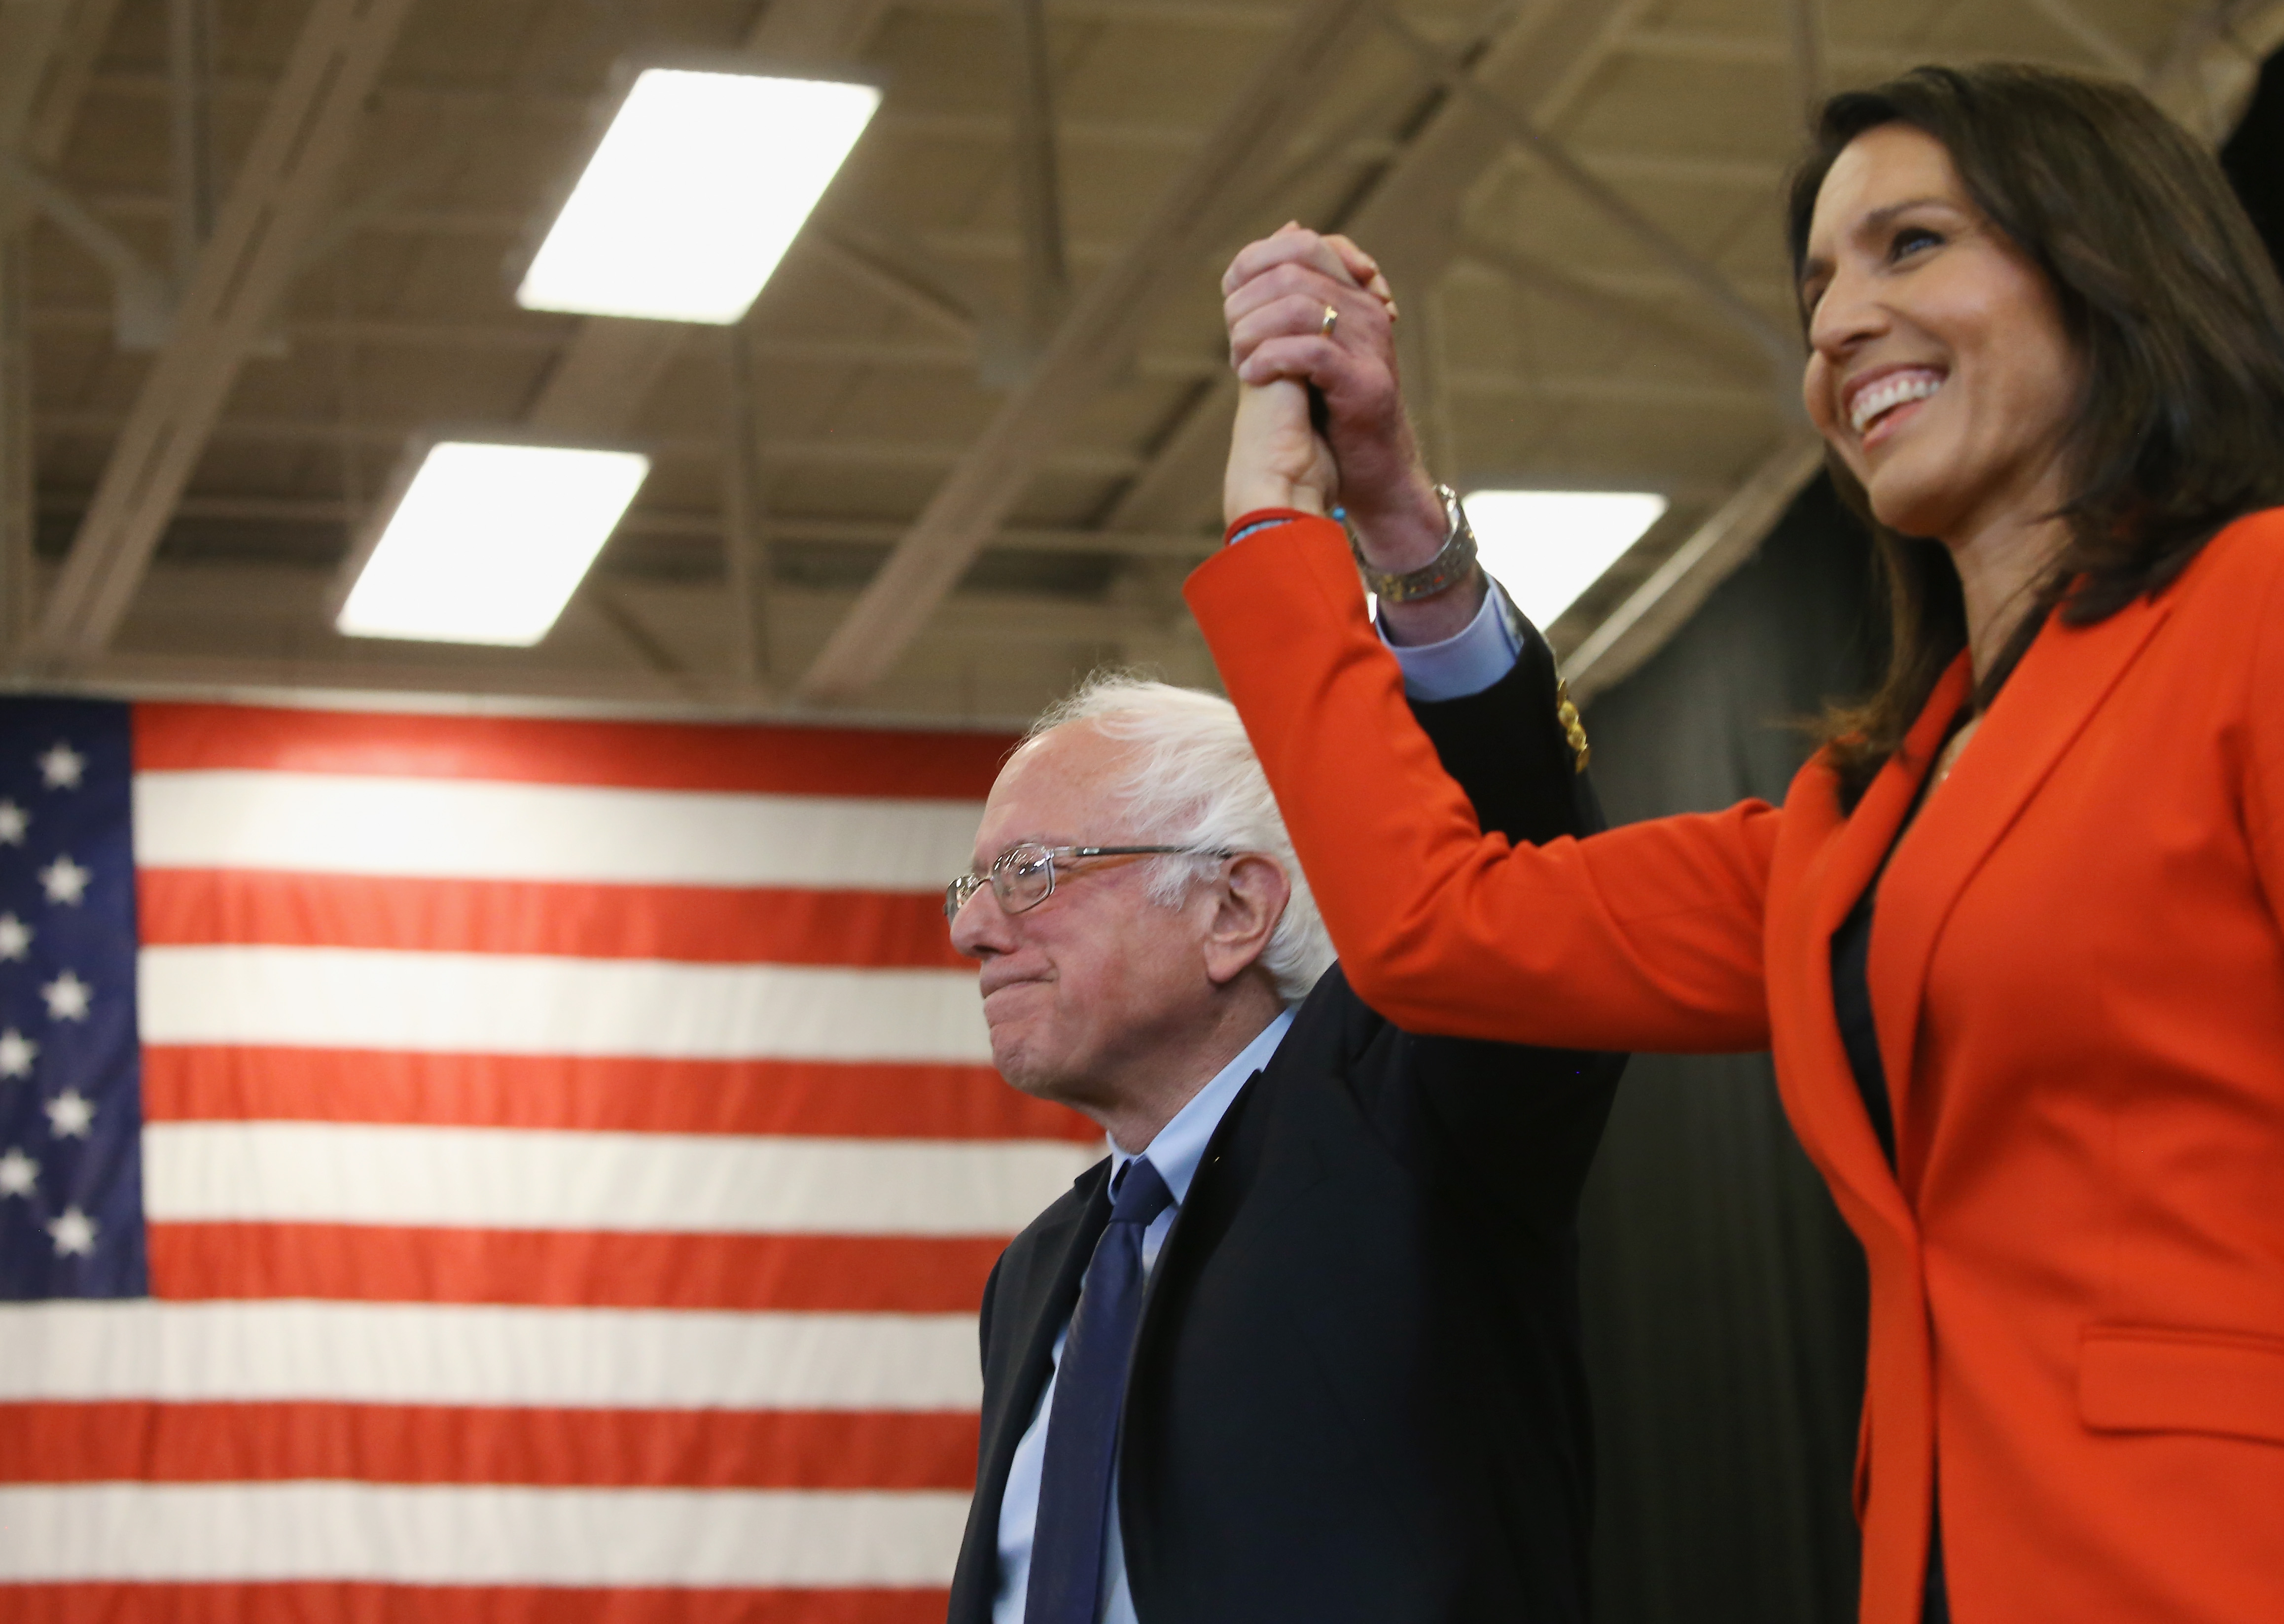 ETTYSBURG, PA - APRIL 22: Sen. Bernie Sanders (I-VT), is introduced to speak by Rep.Tulsi Gabbard, (D-HI),(R), during a campaign stop at the Bream Wright Hauser Athletic Complex at Gettysburg College, April 22, 2016 in Gettysburg, Pennsylvania. Pennsylvania will hold its 2016 primary election on Tuesday April 26th. (Photo by Mark Wilson/Getty Images)